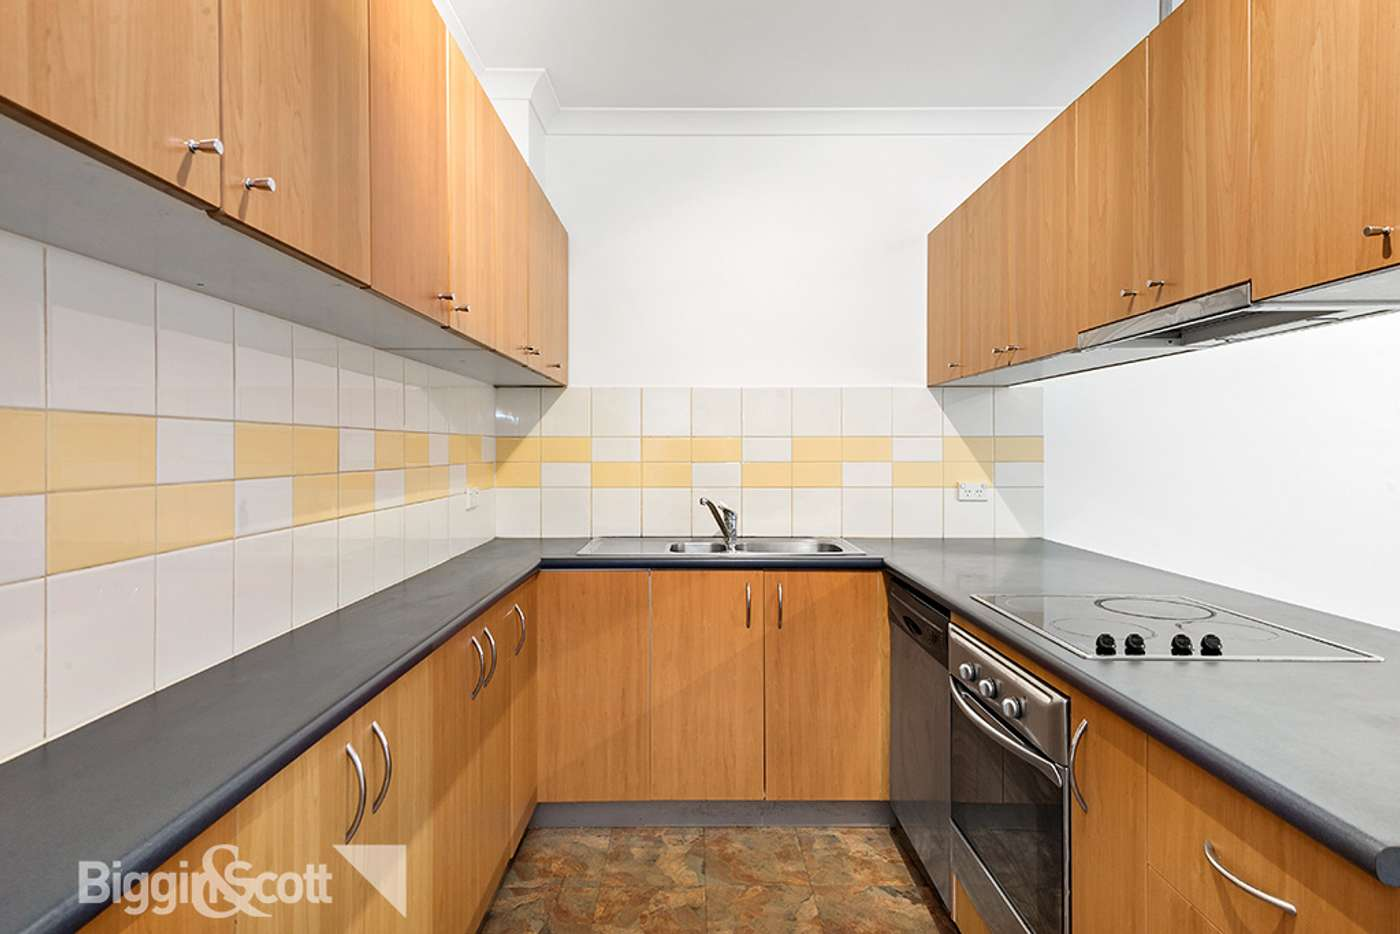 Main view of Homely apartment listing, 4/1A St Kilda Road, St Kilda VIC 3182